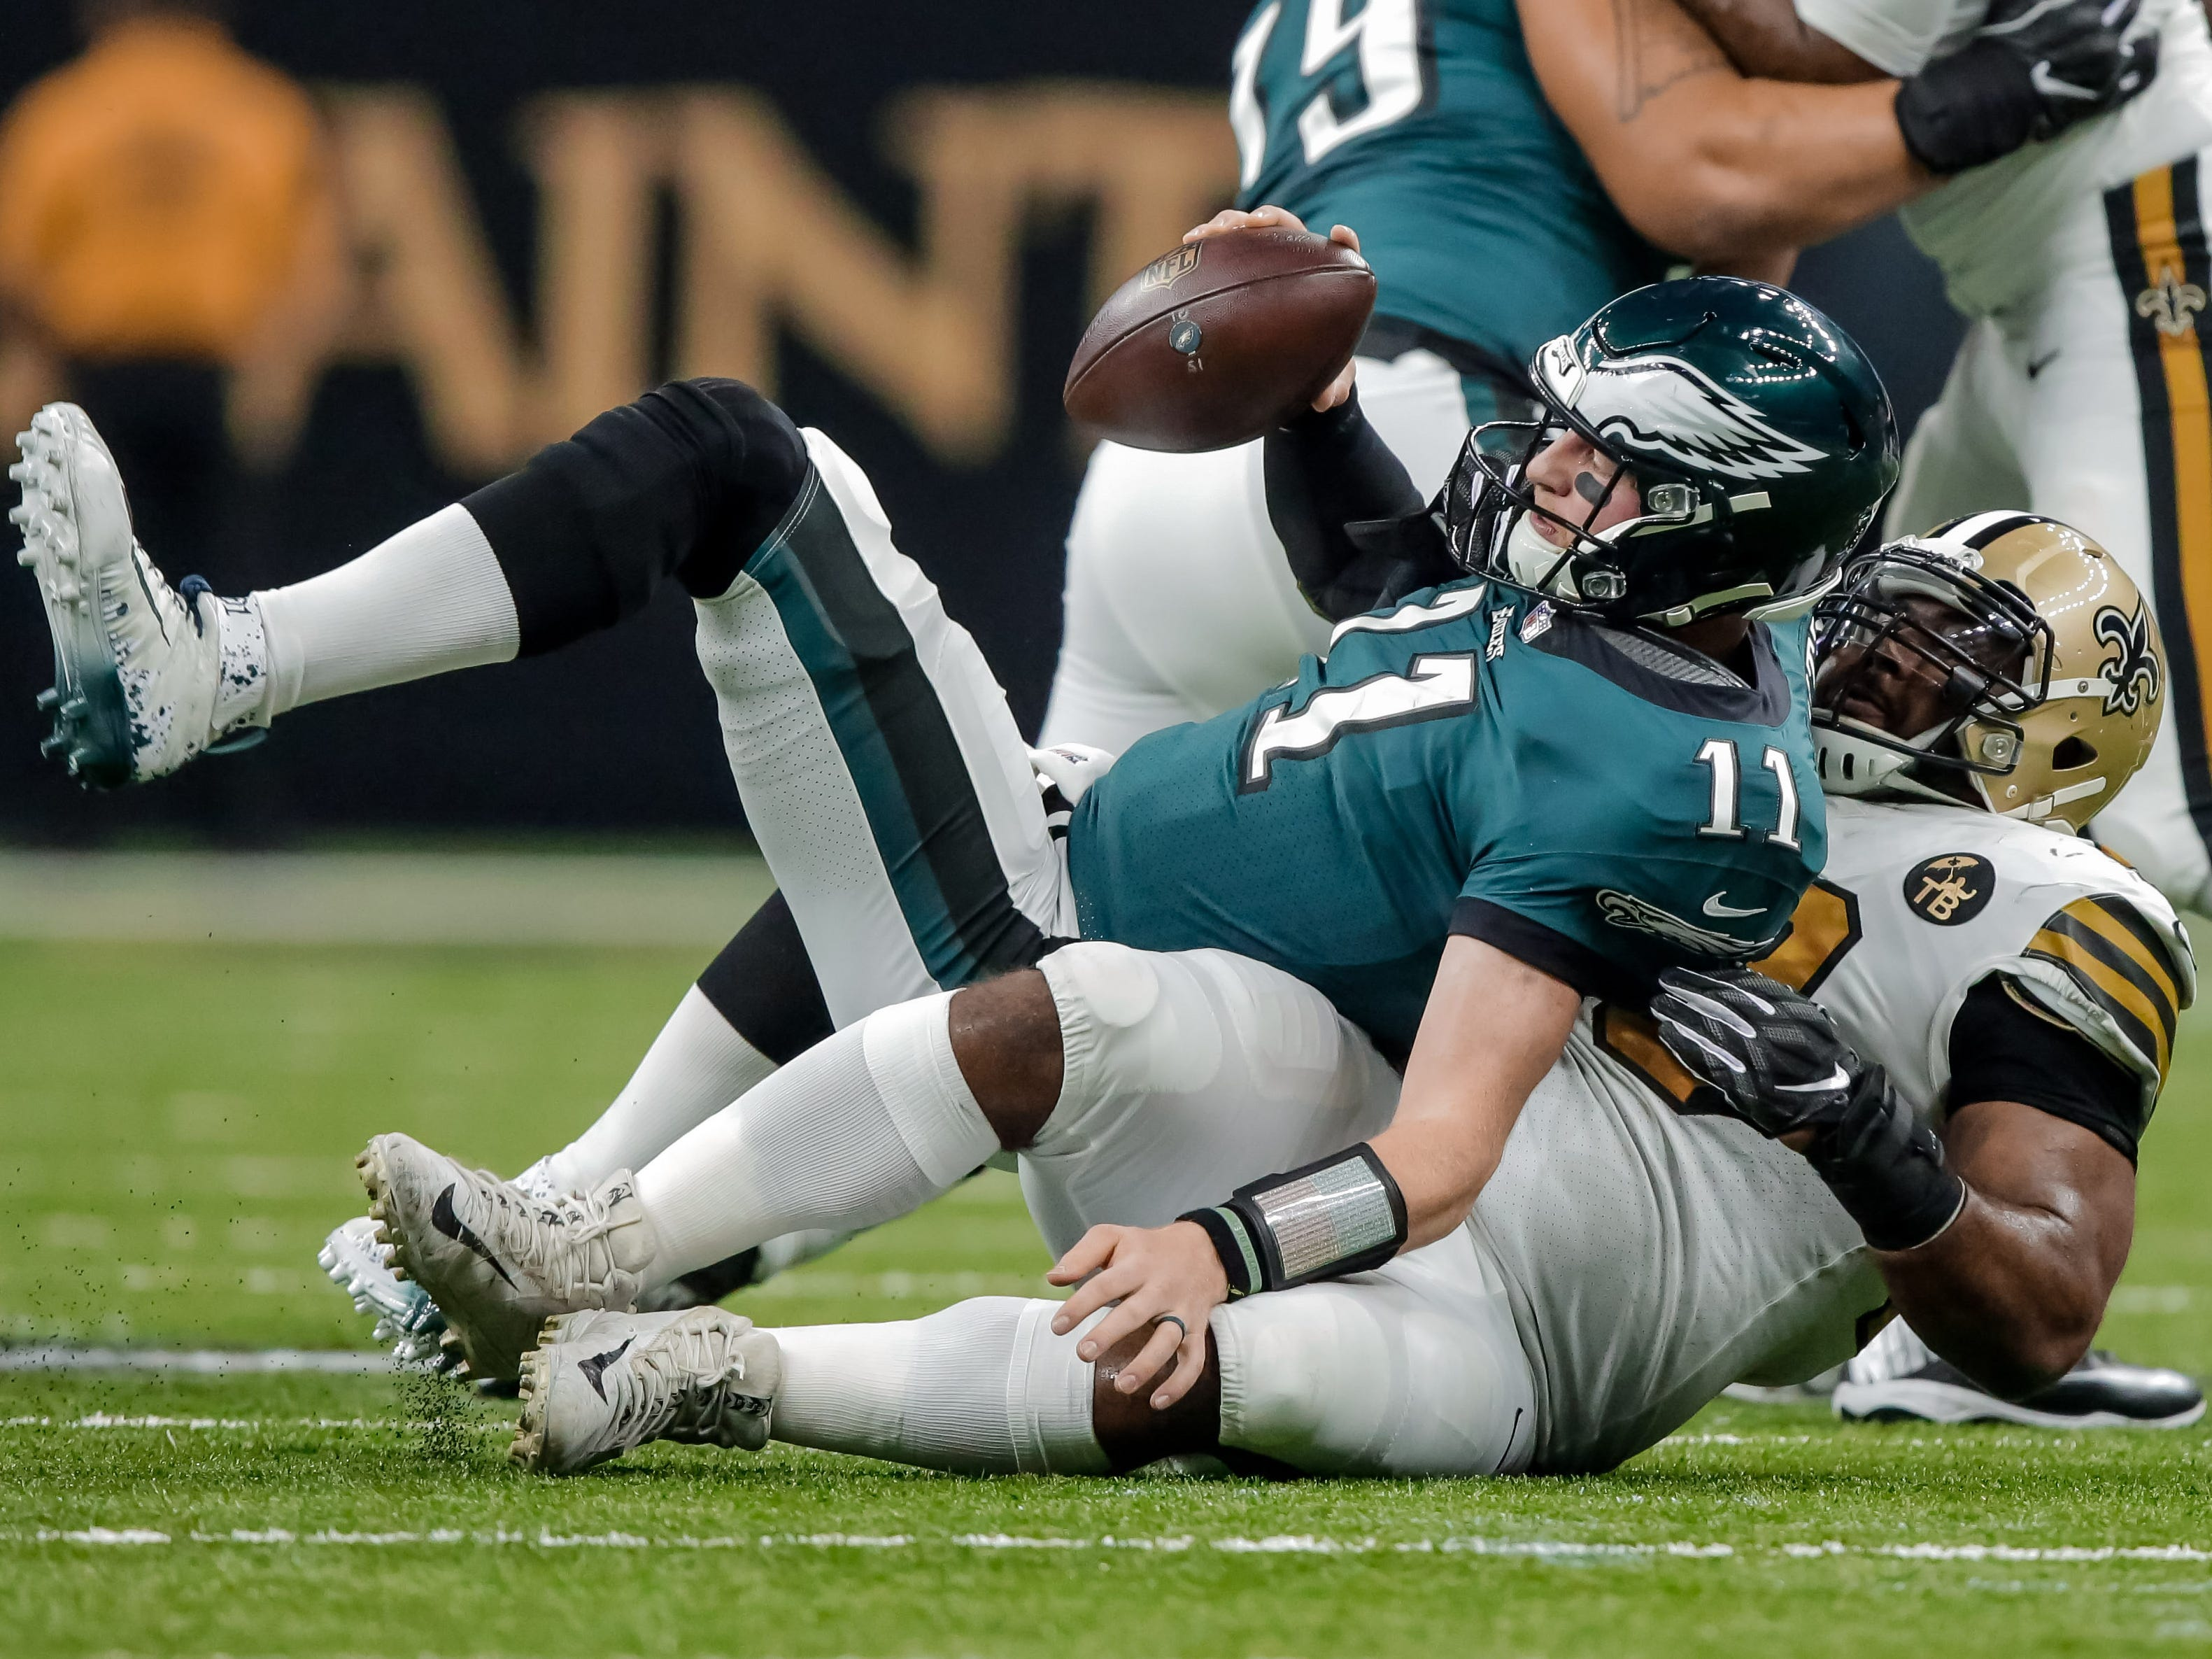 22. Eagles (17): All seems lost, especially given 41-point blowout worst ever suffered by reigning champ. BUT next three vs. NFC East, so opportunity knocks.